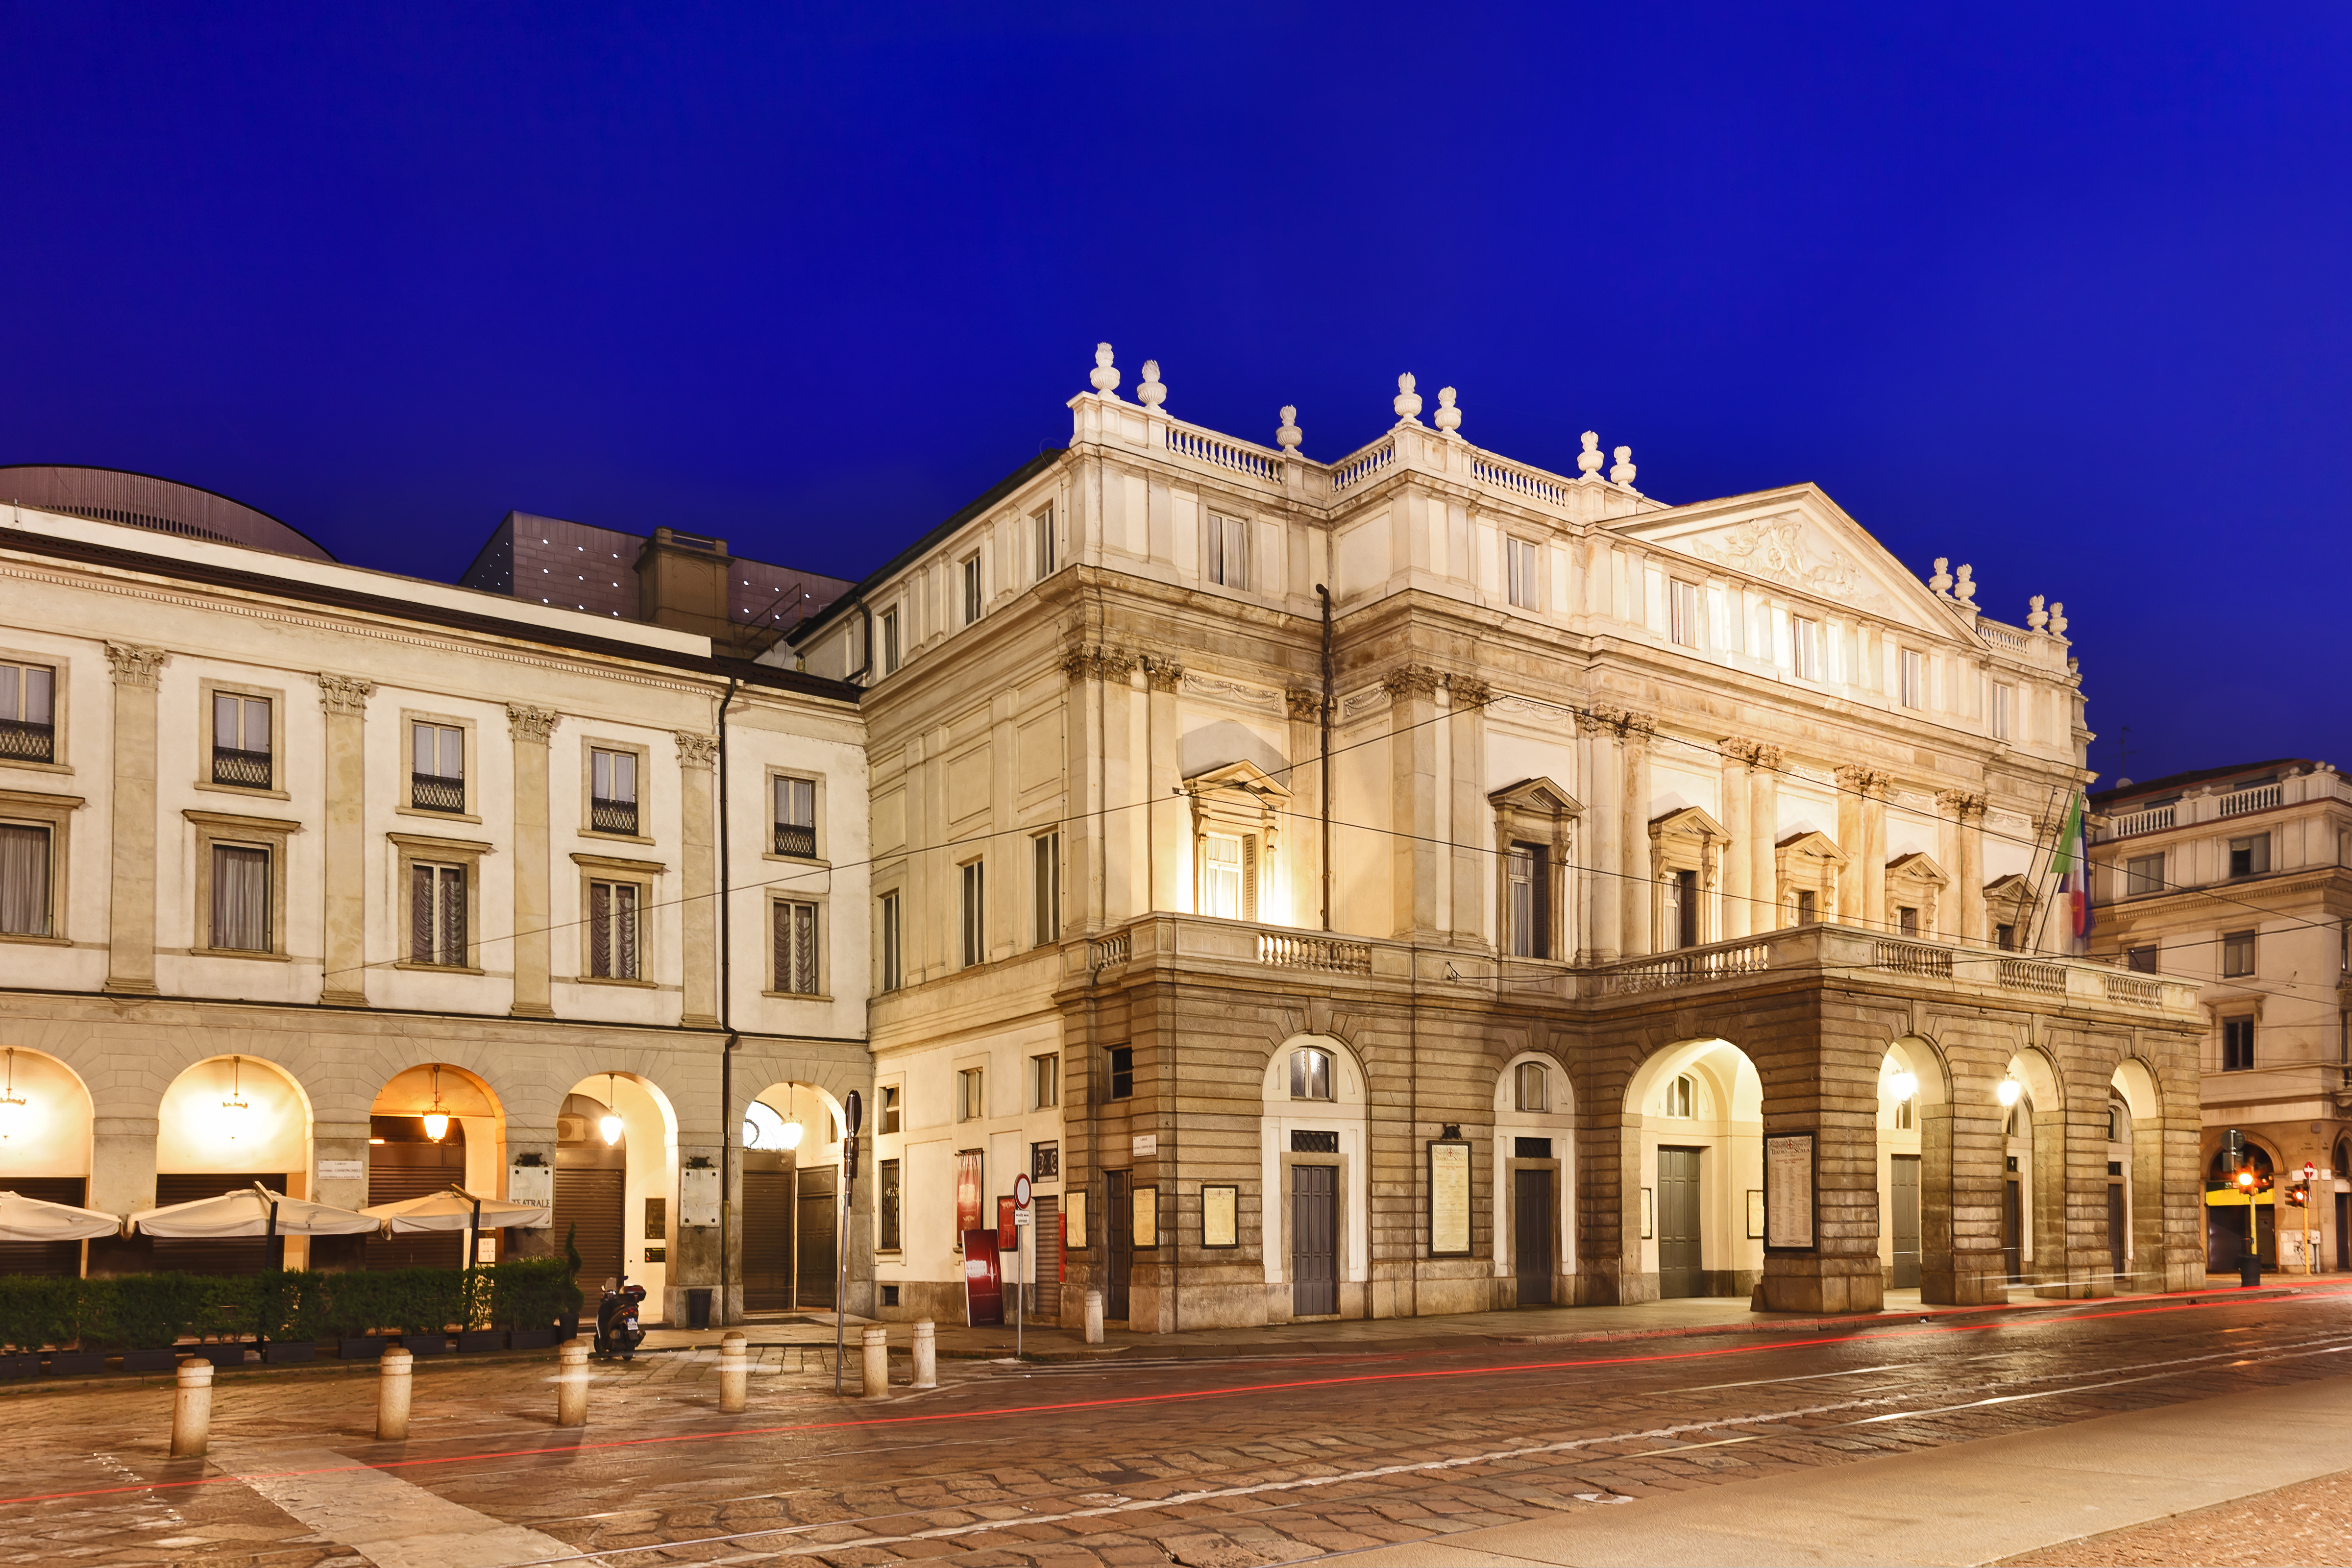 Italy lombardy milan city landmark la scala theater building illuminated with lights at sunrise facade neo classical style nobody